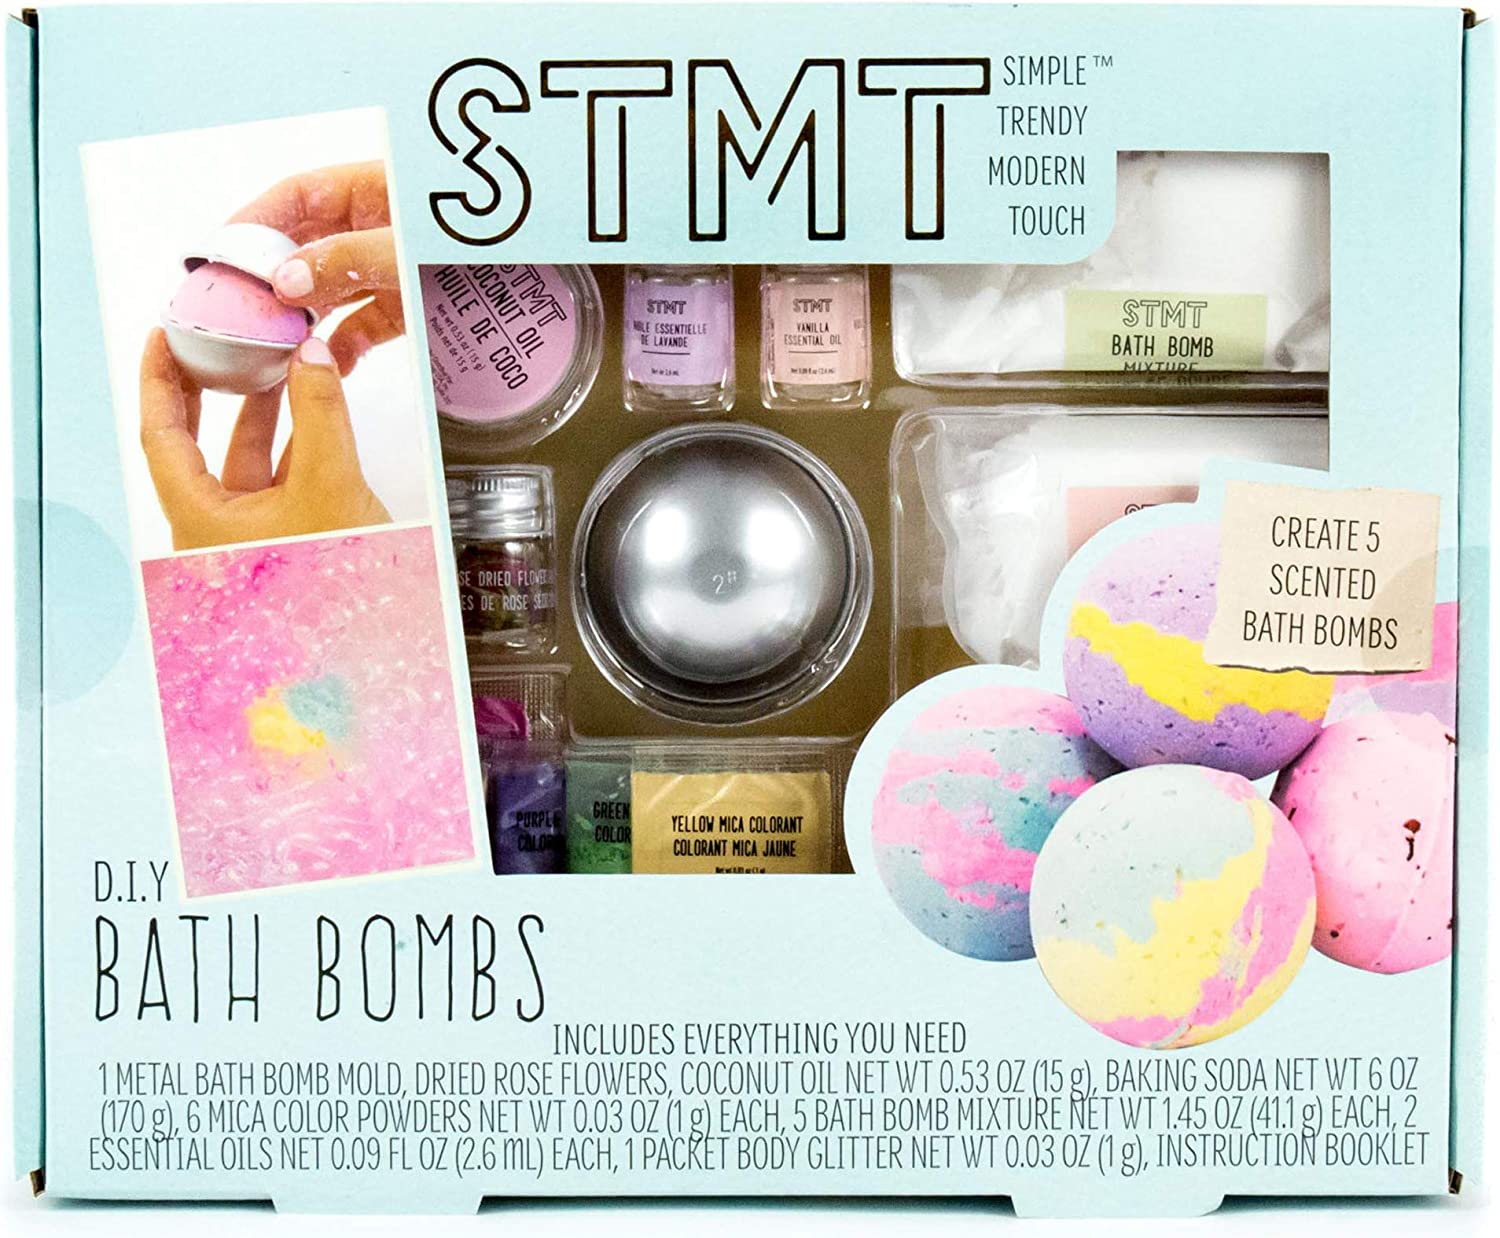 An image of a Bath bomb making set in a turquoise-colored box.